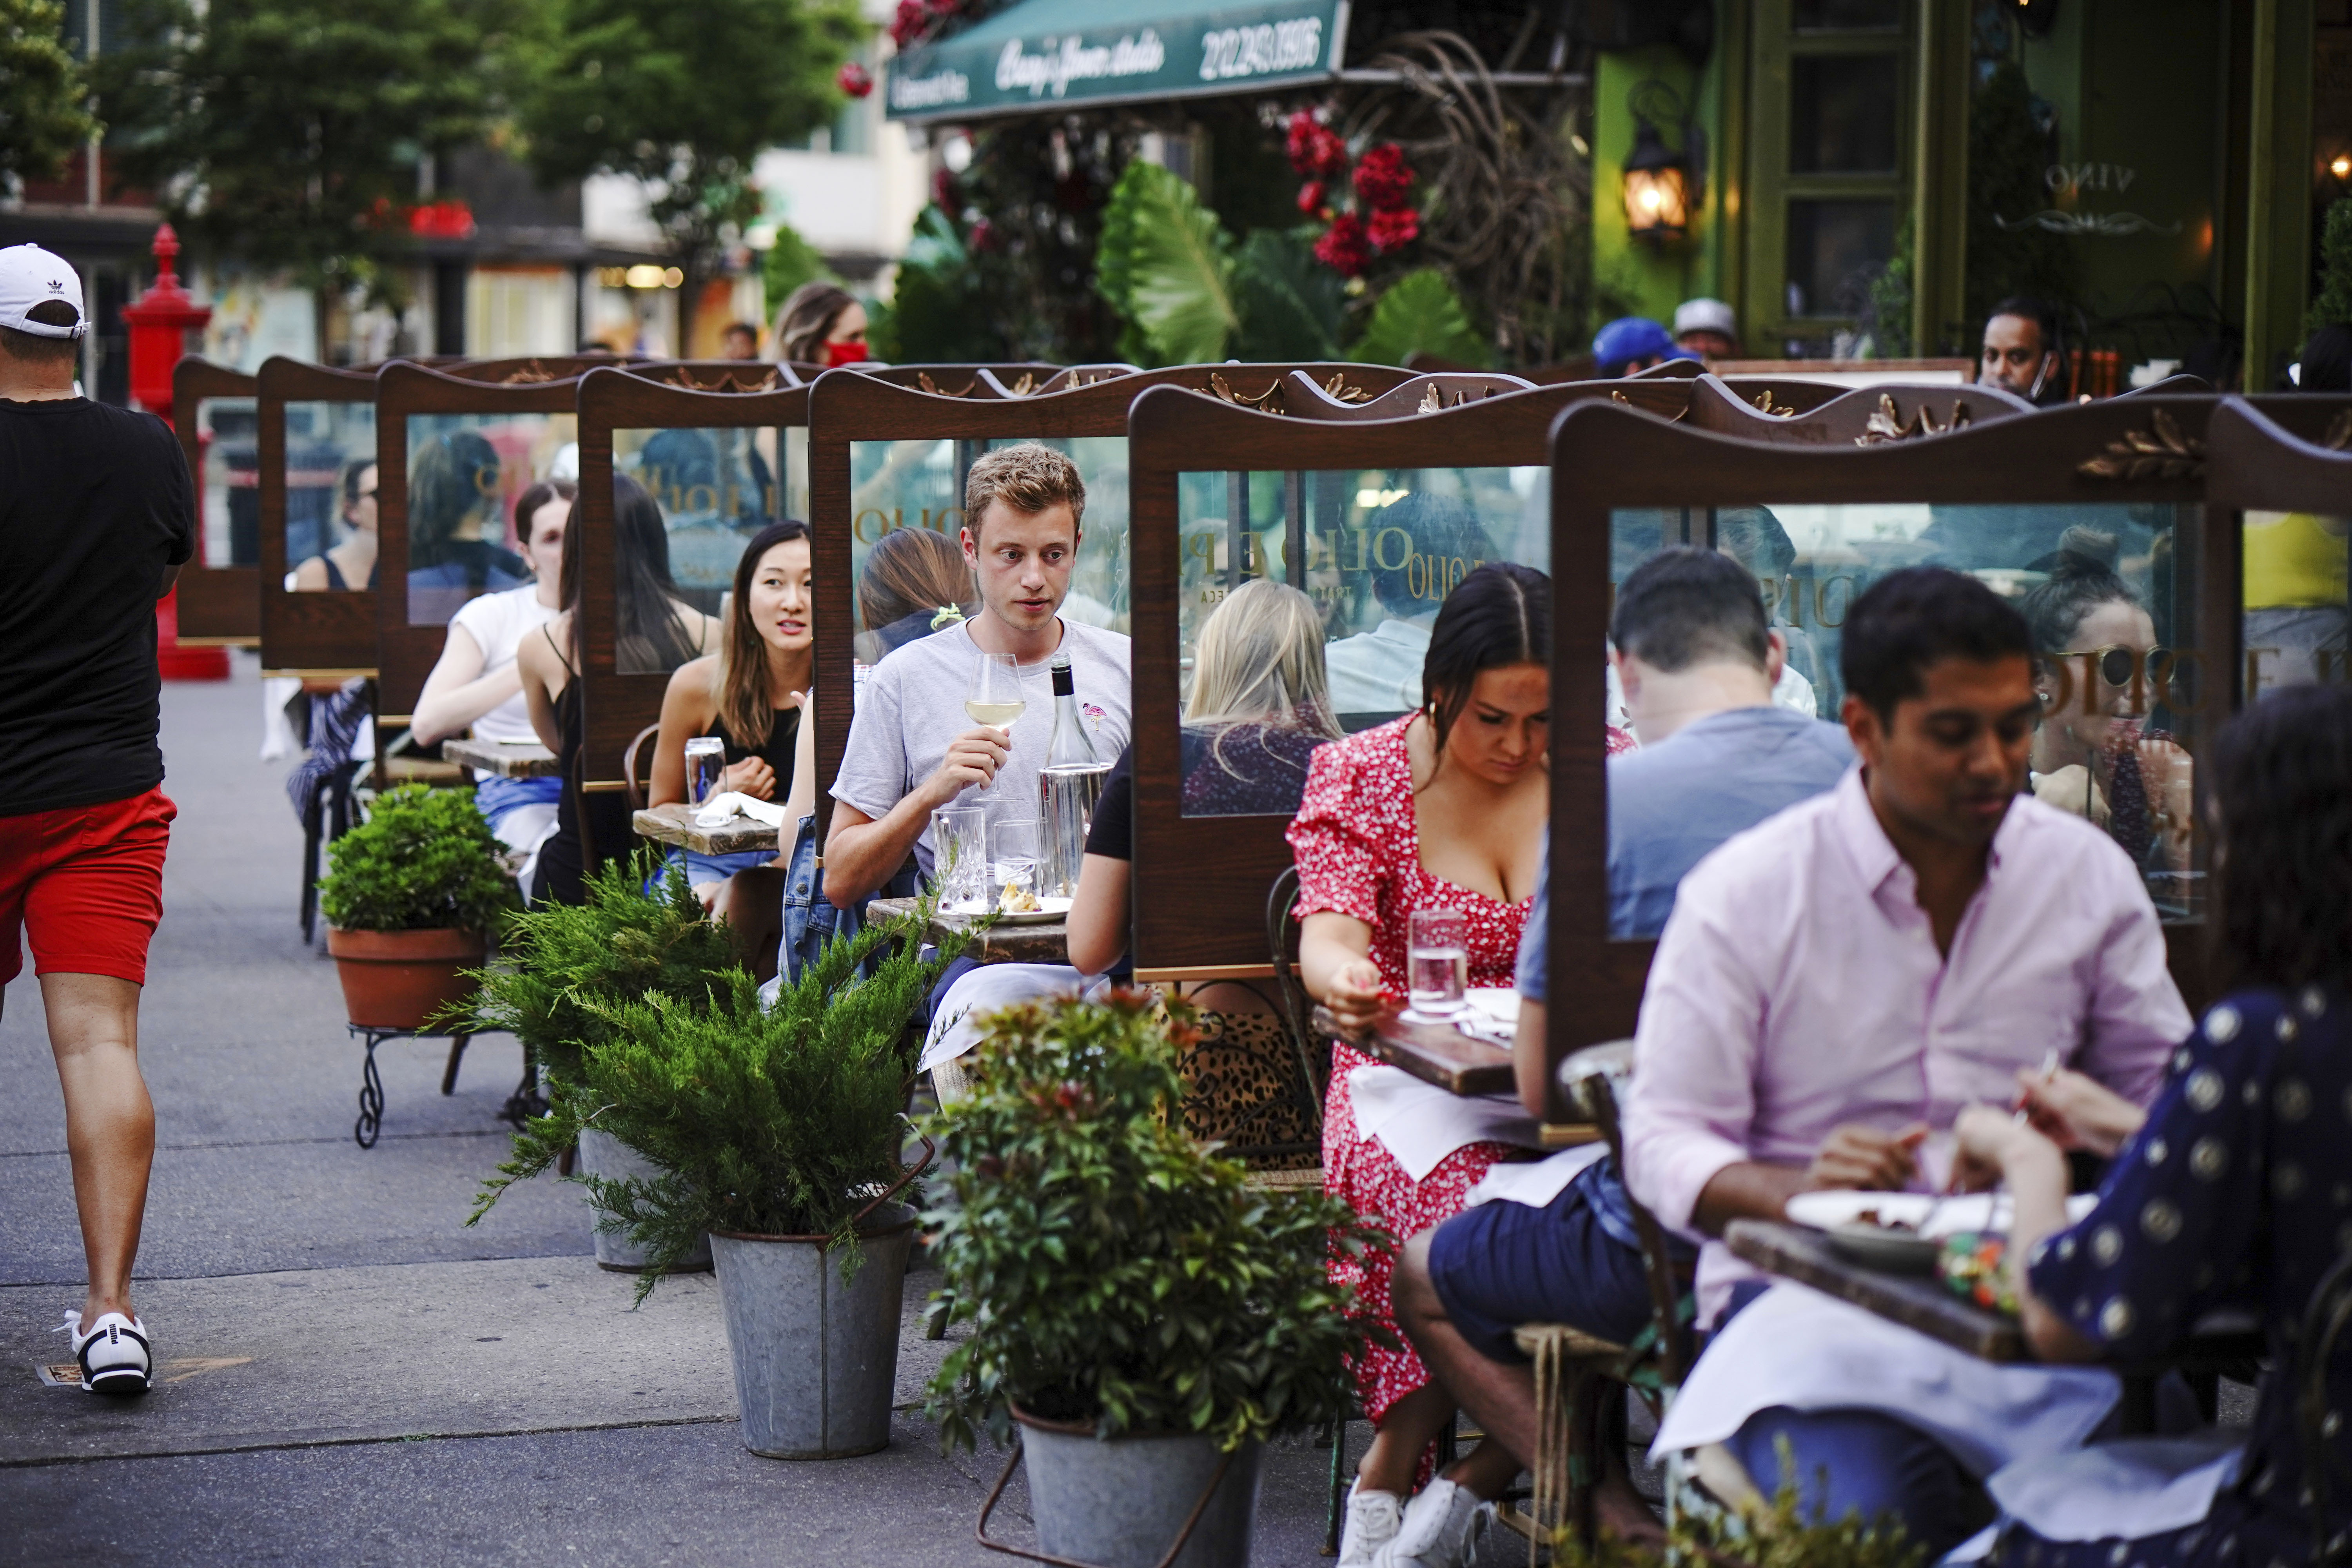 People eat outdoors at a restaurant in New York on June 26.